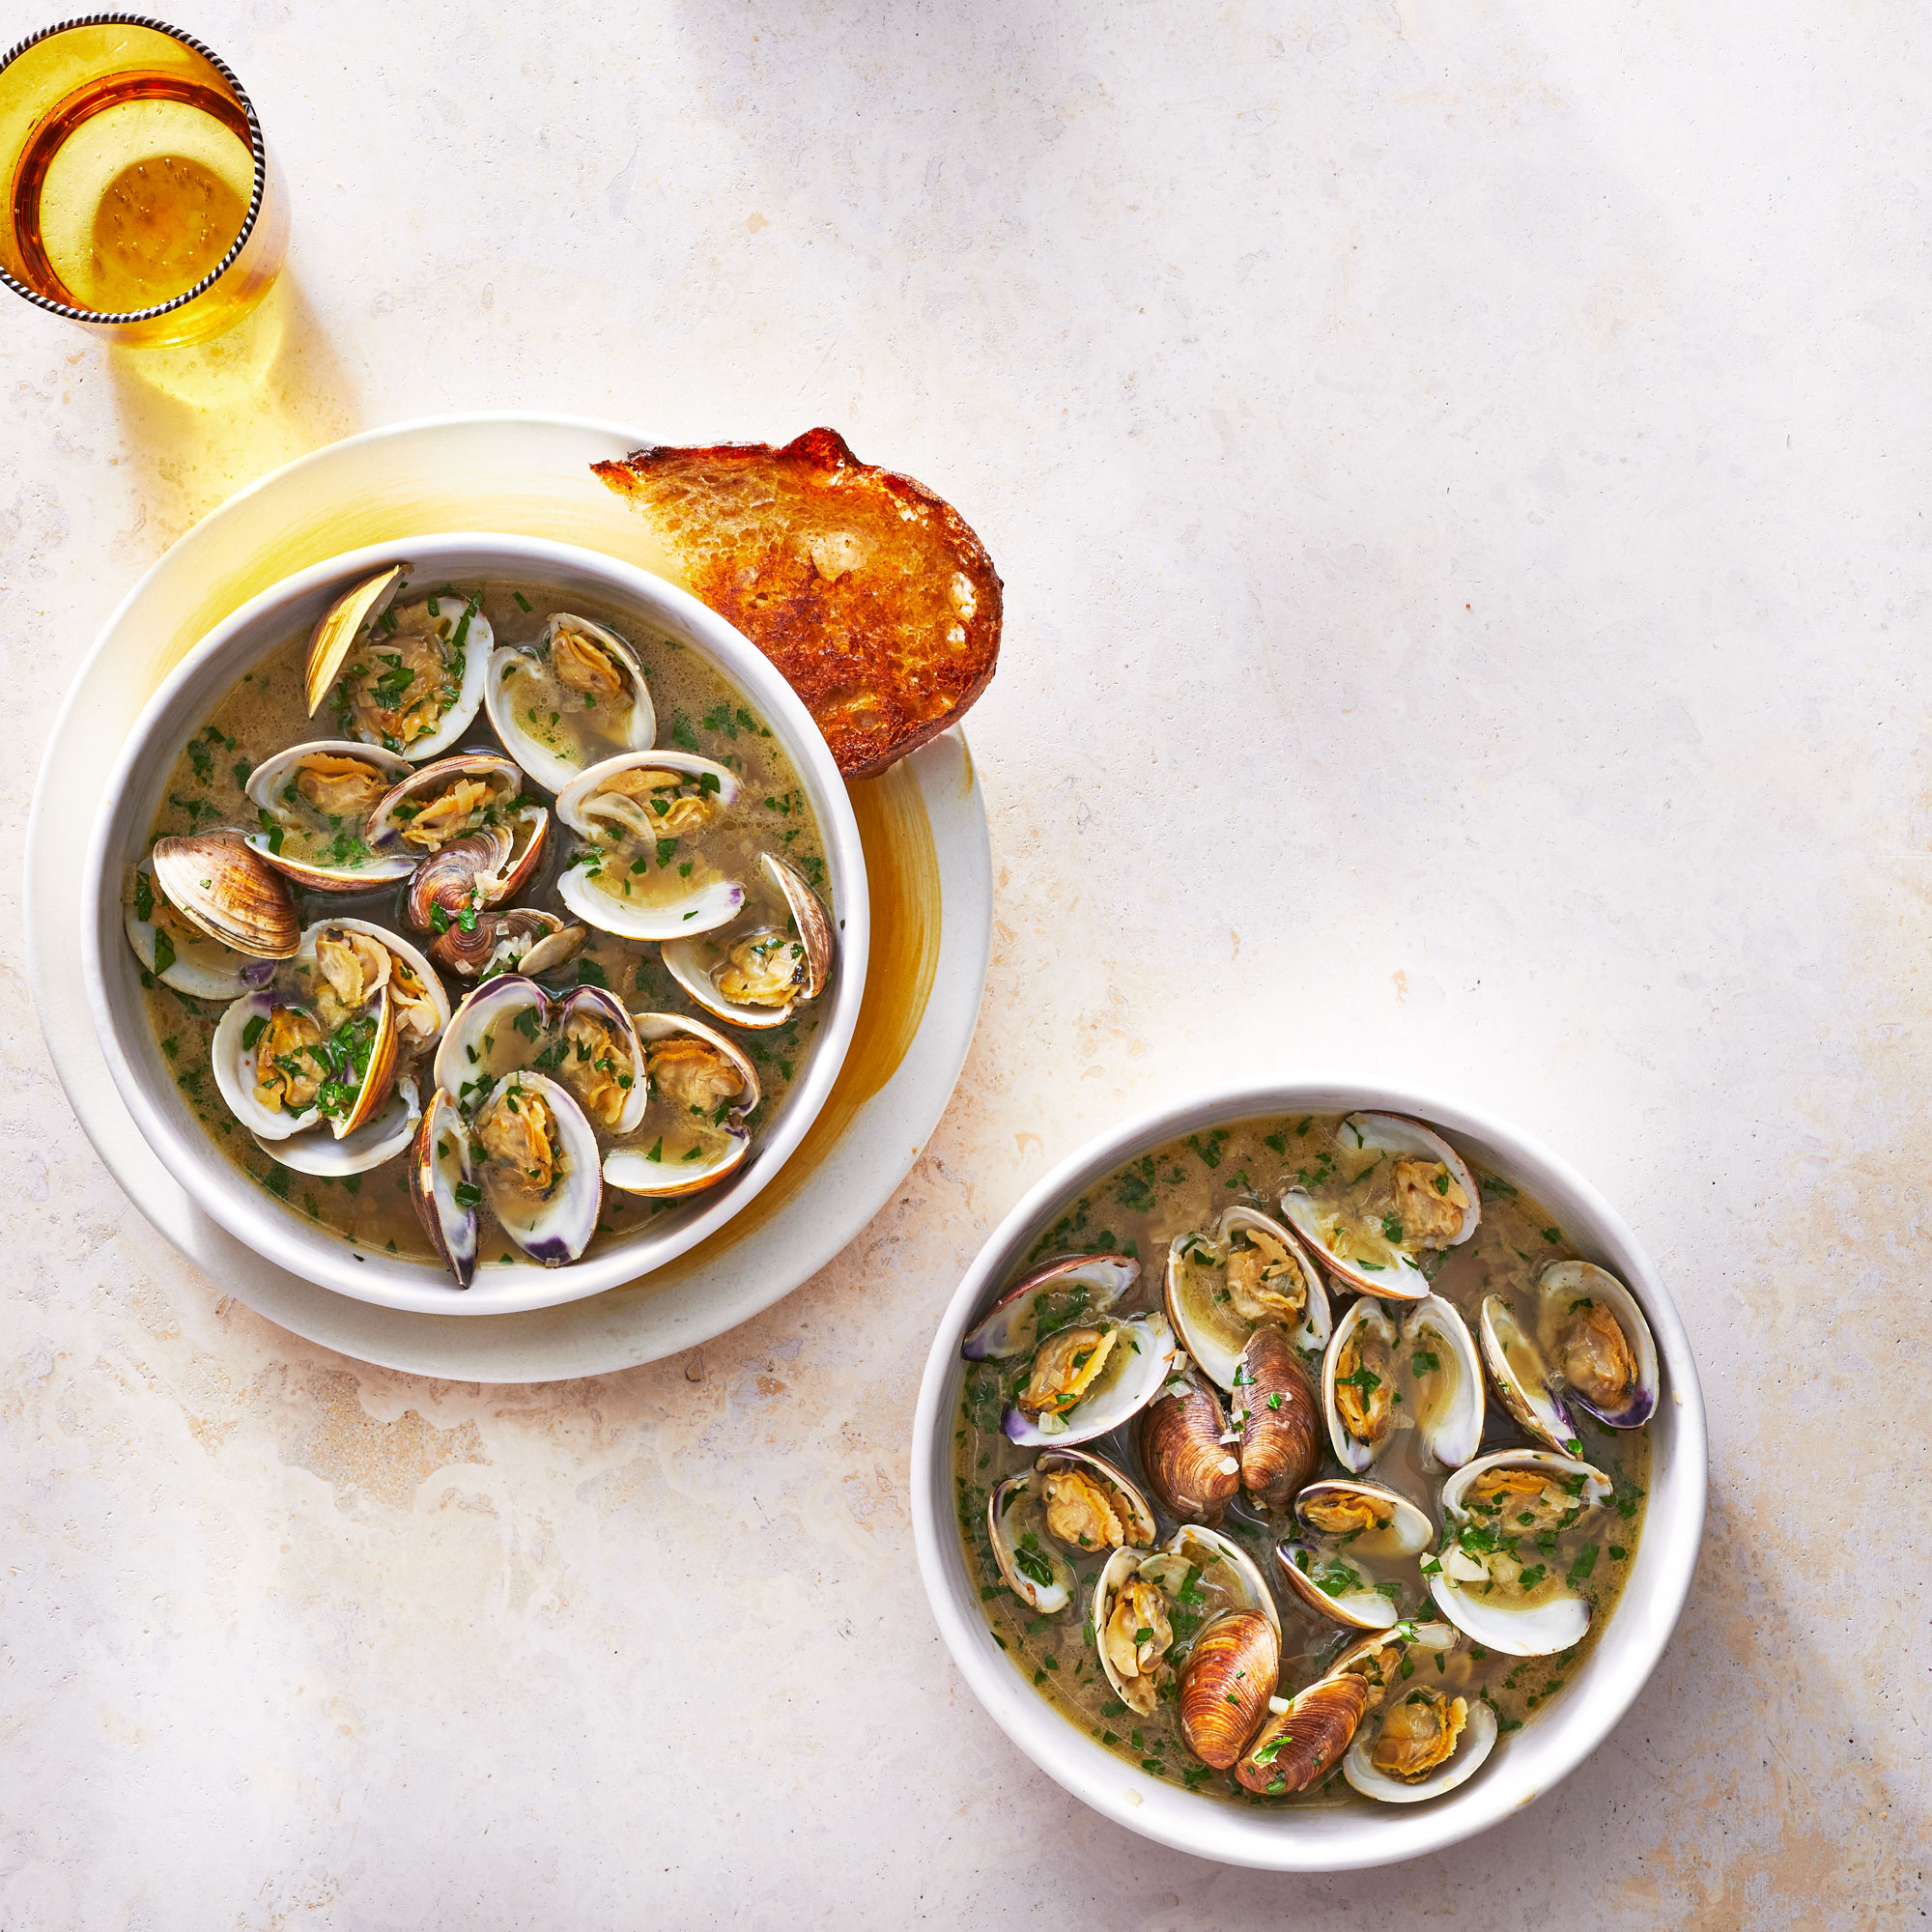 Steamed Clams with Garlic Toast